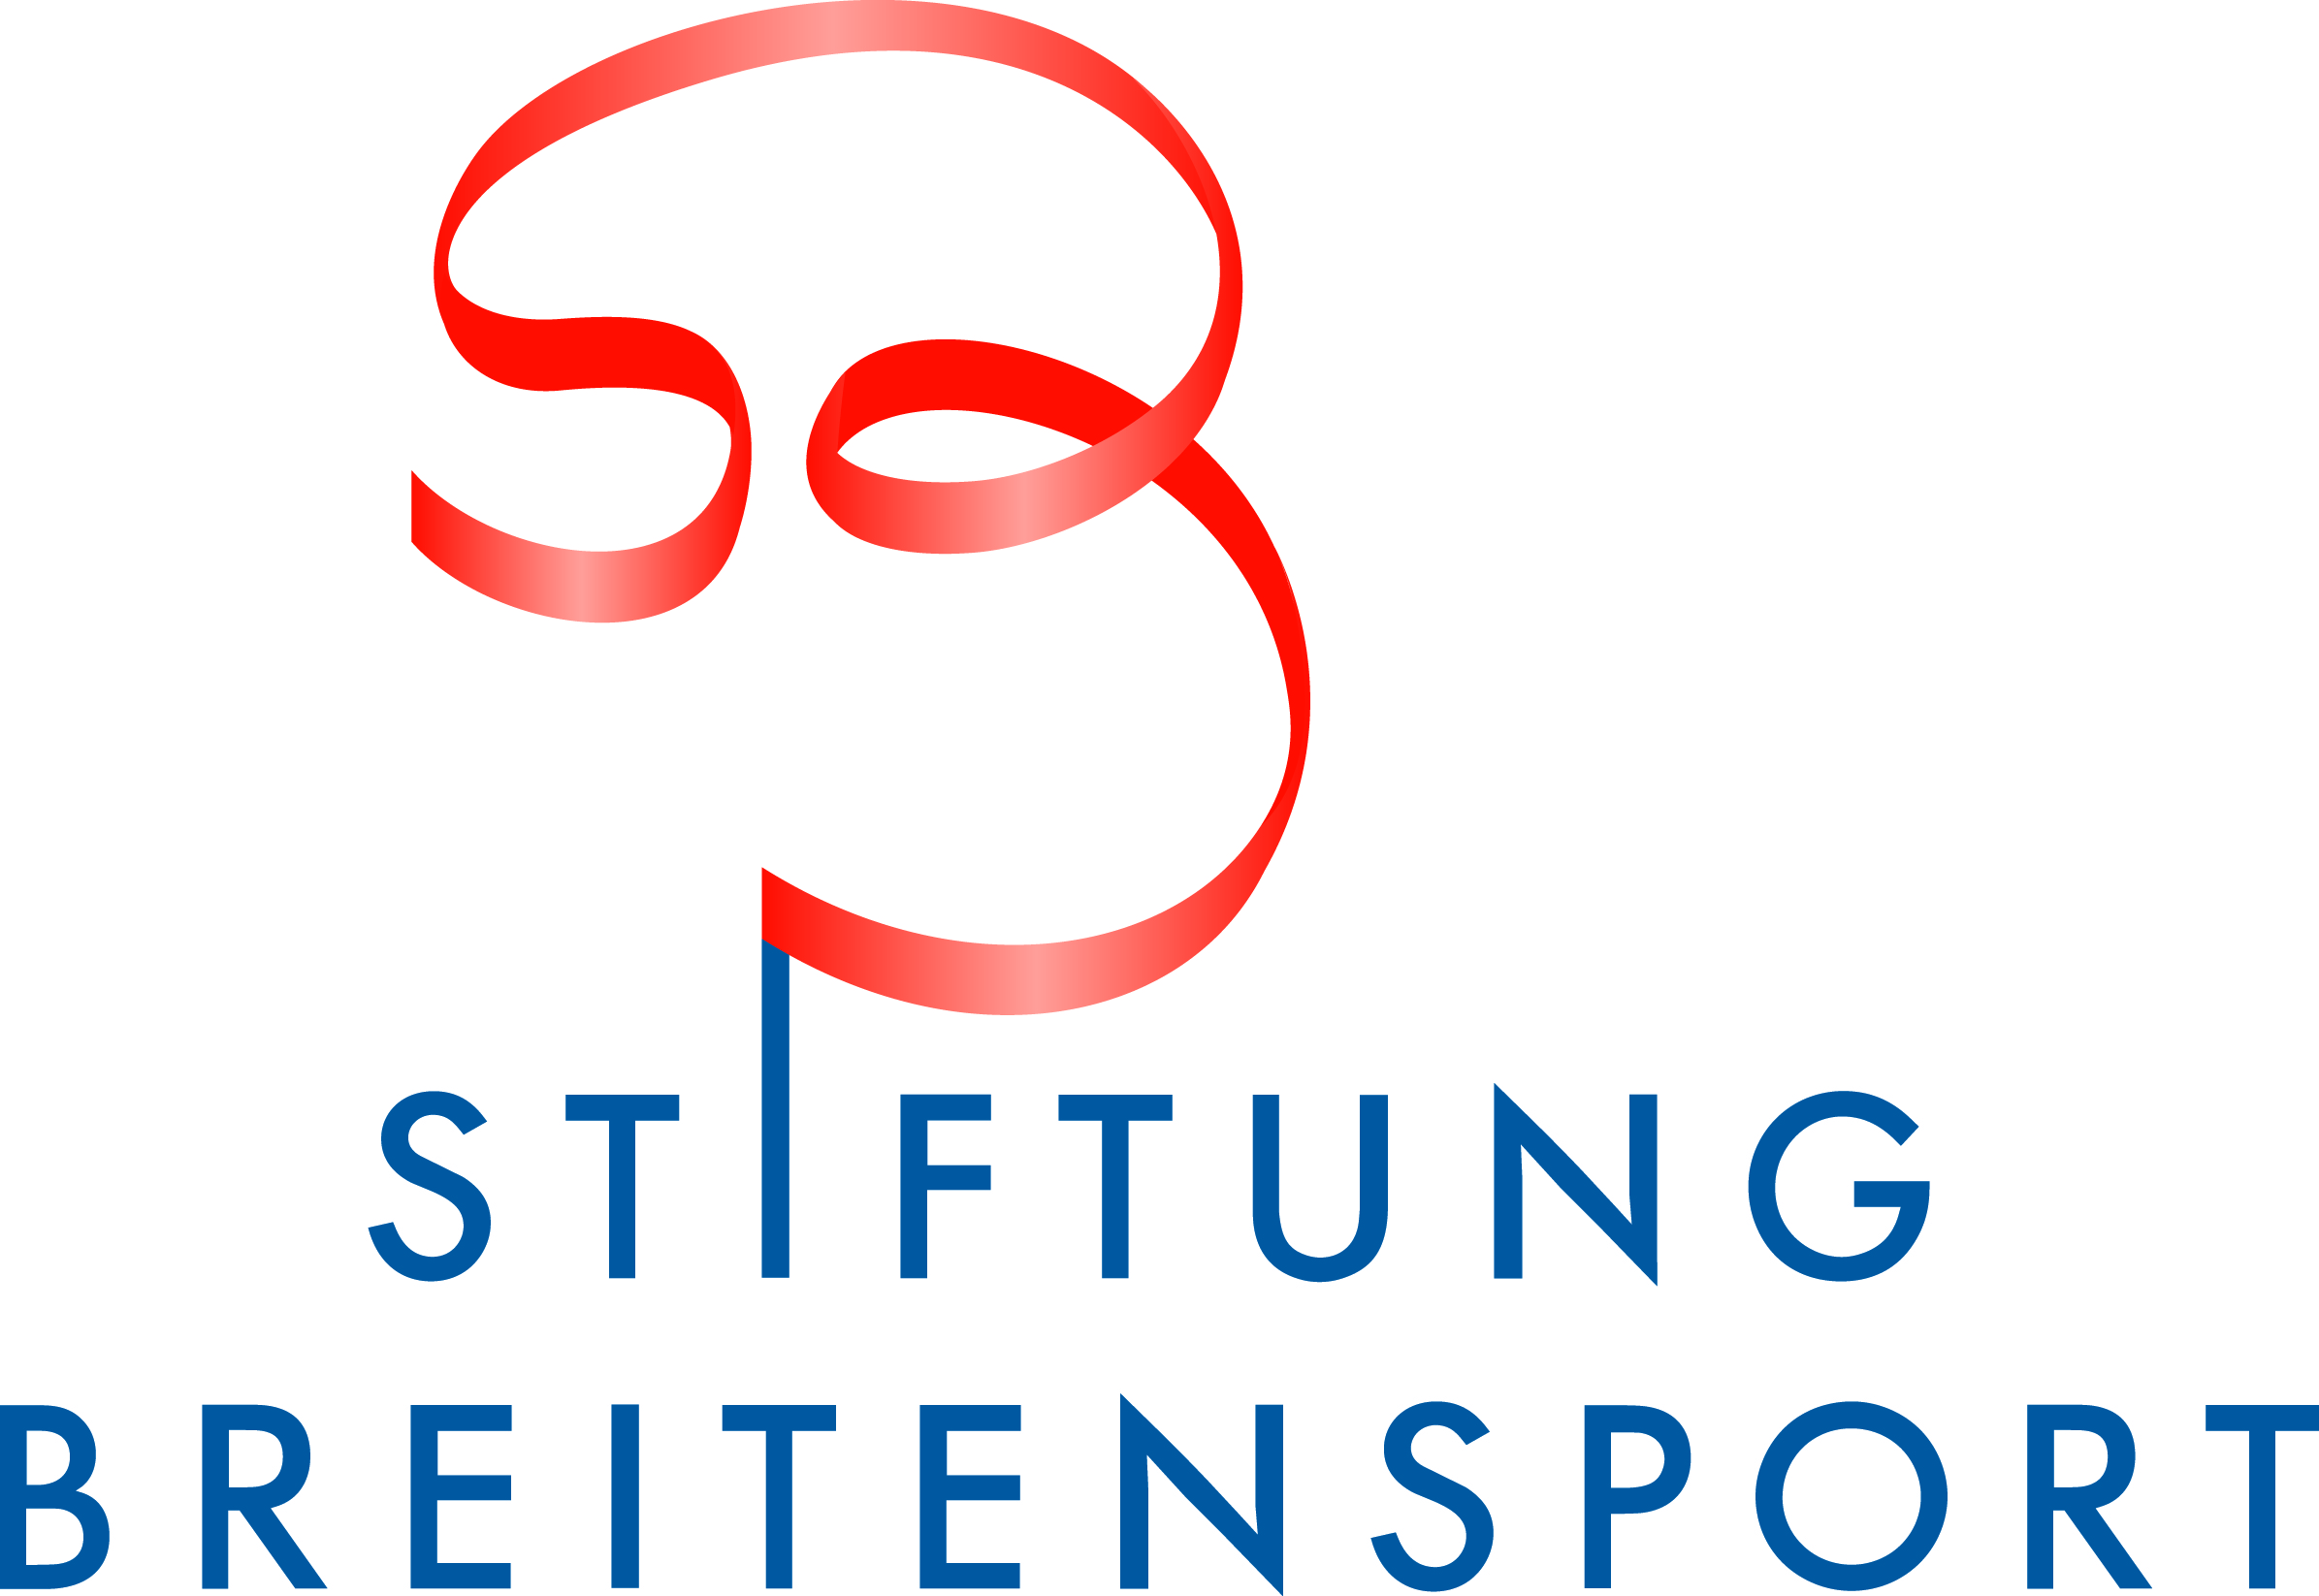 Stiftung Breitensport